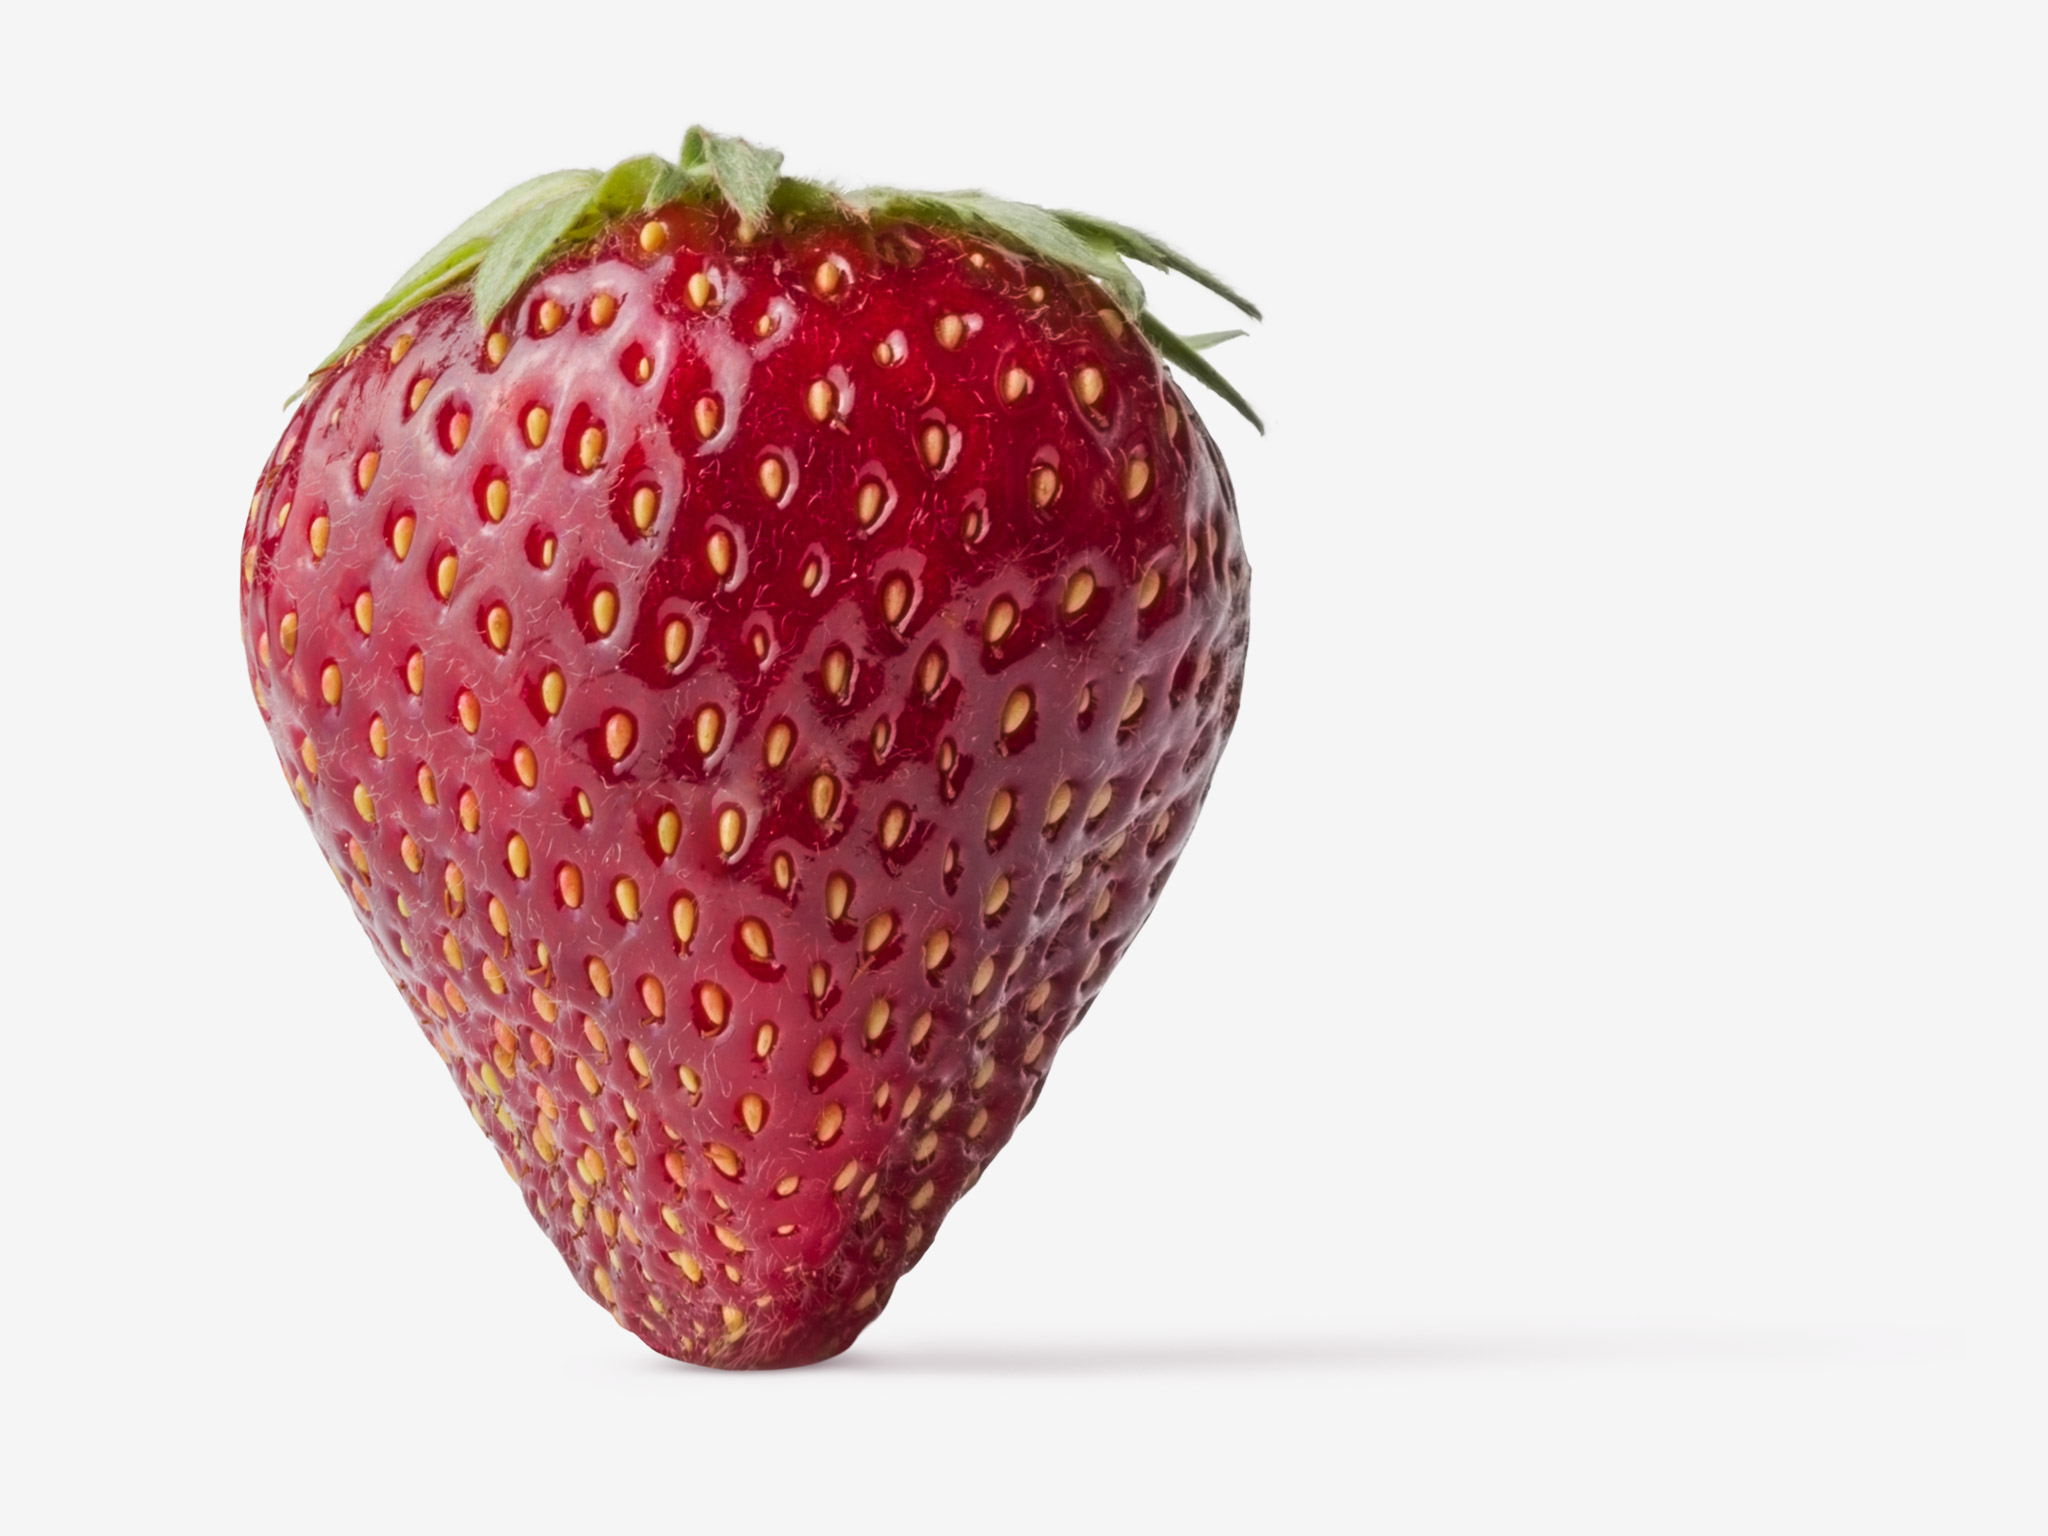 Strawberry PSD isolated image